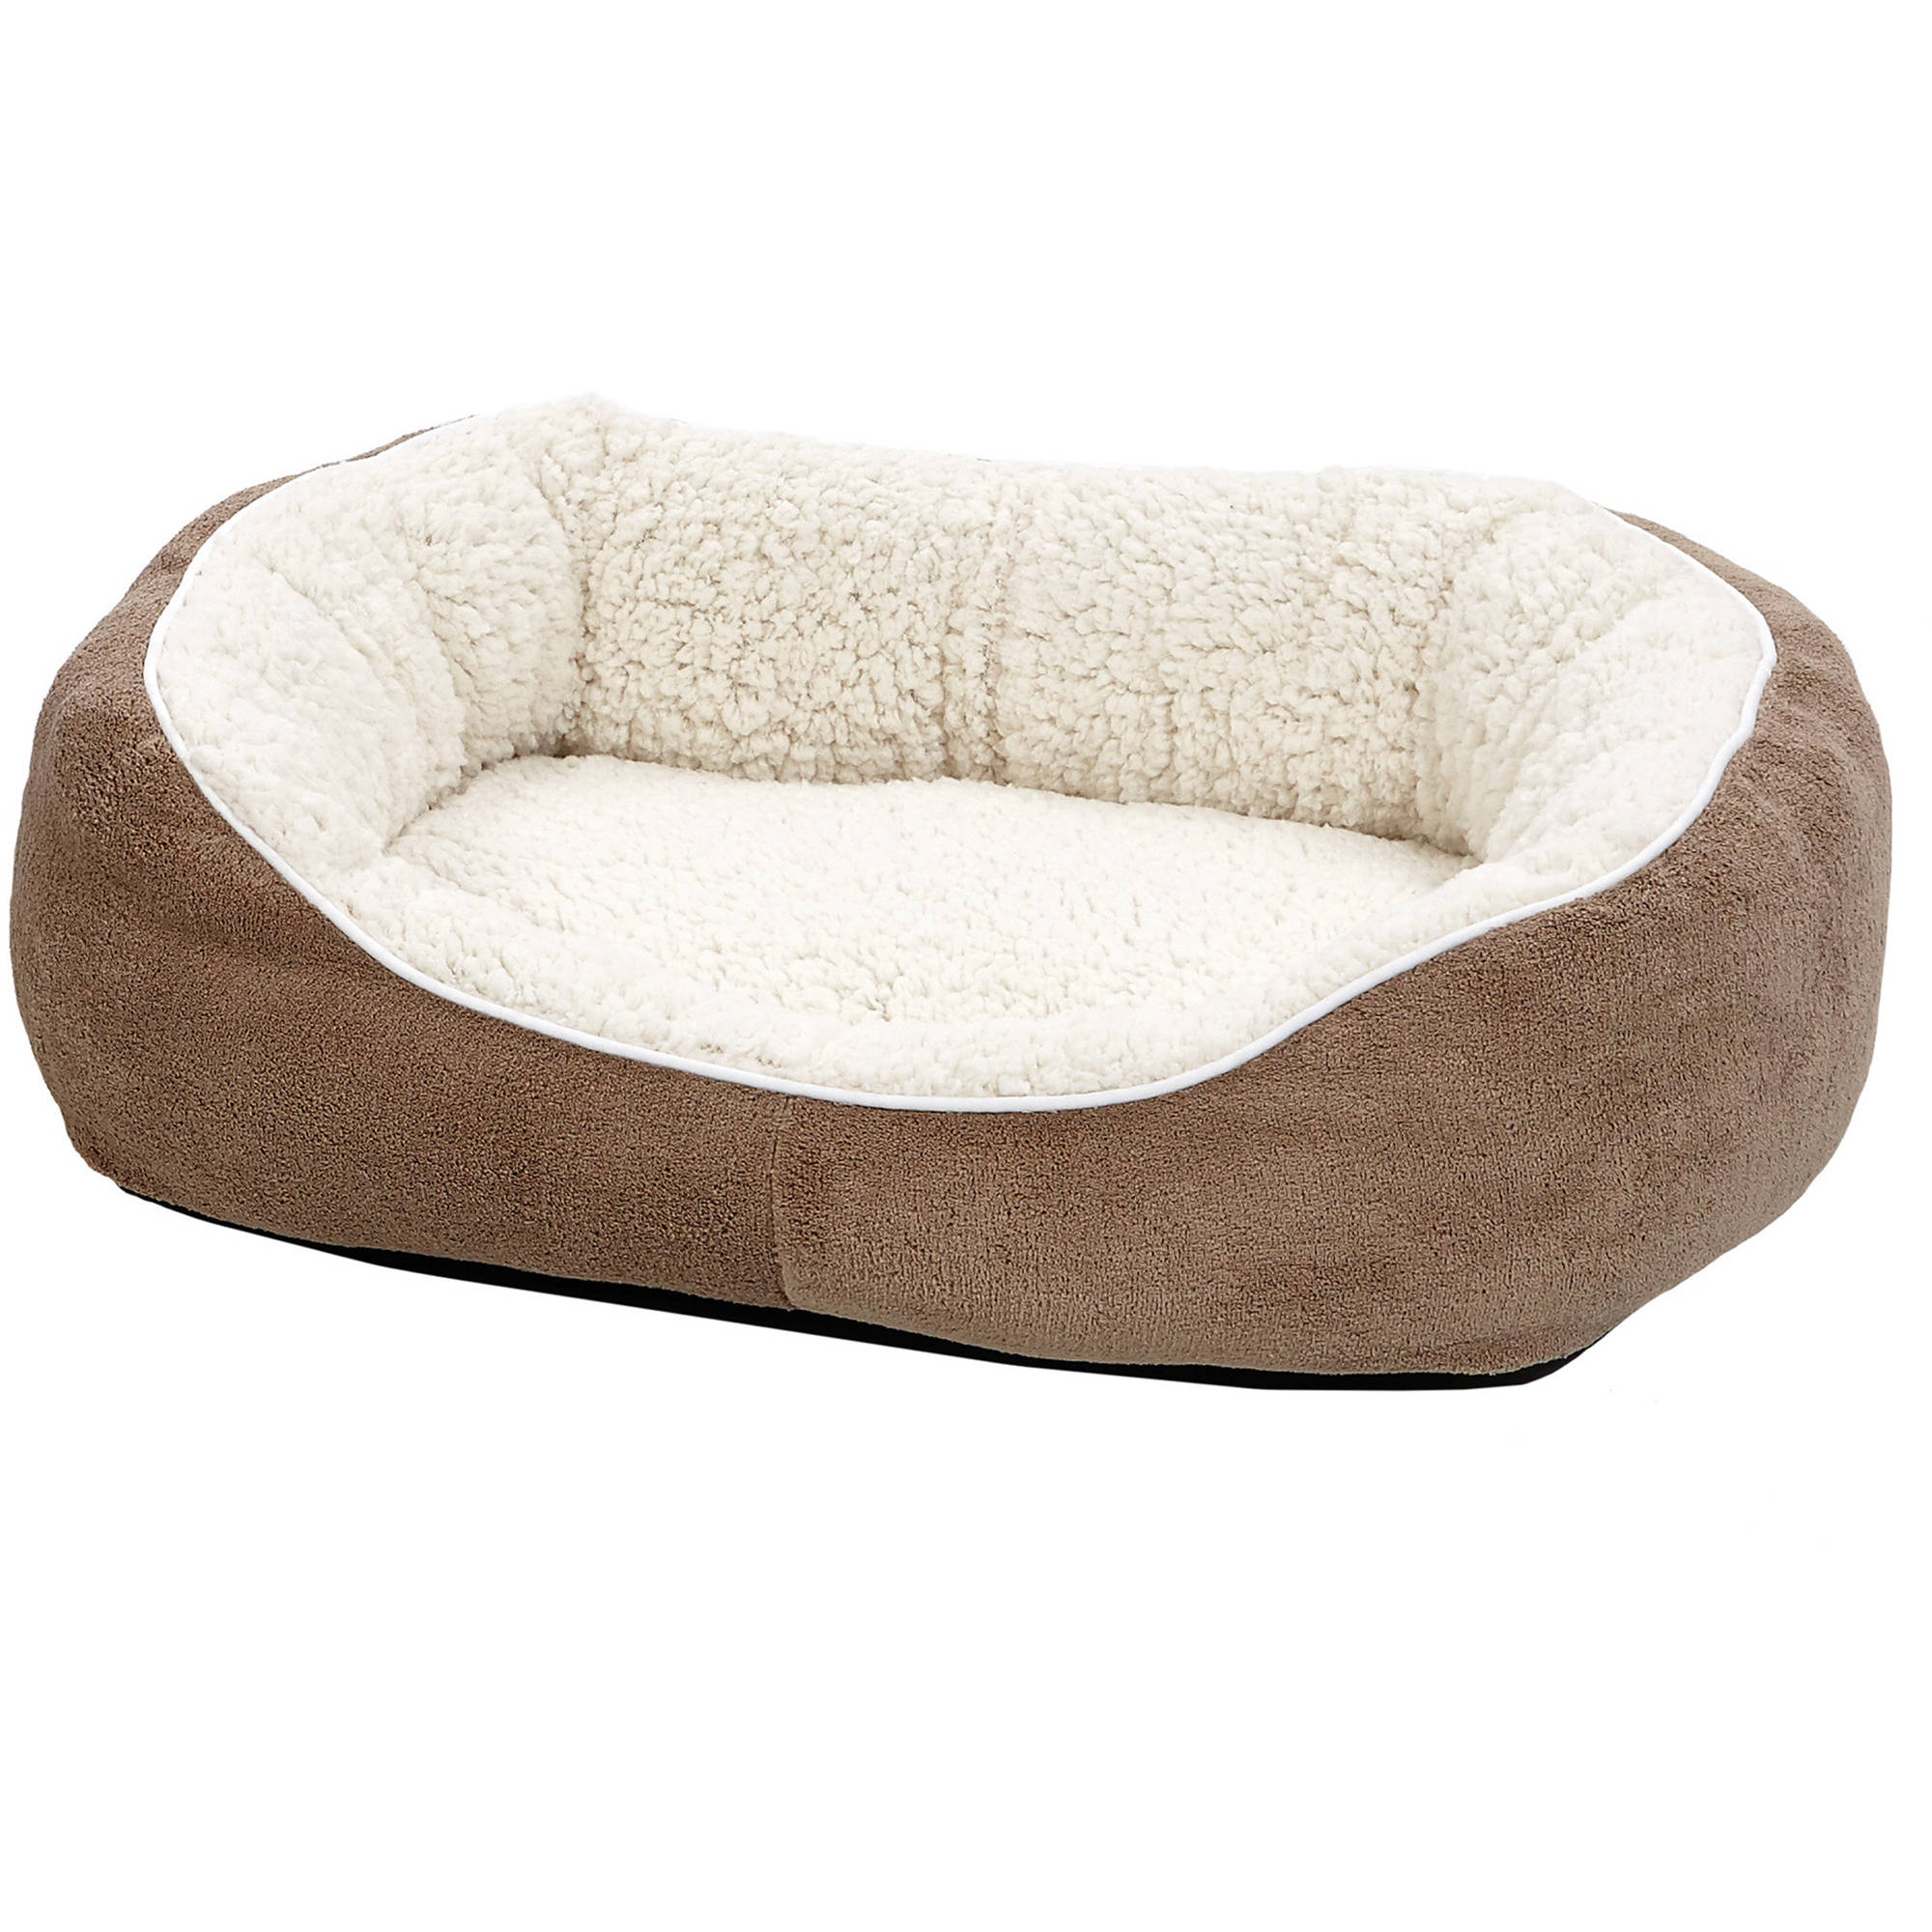 Midwest Small Taupe Cuddle Bed